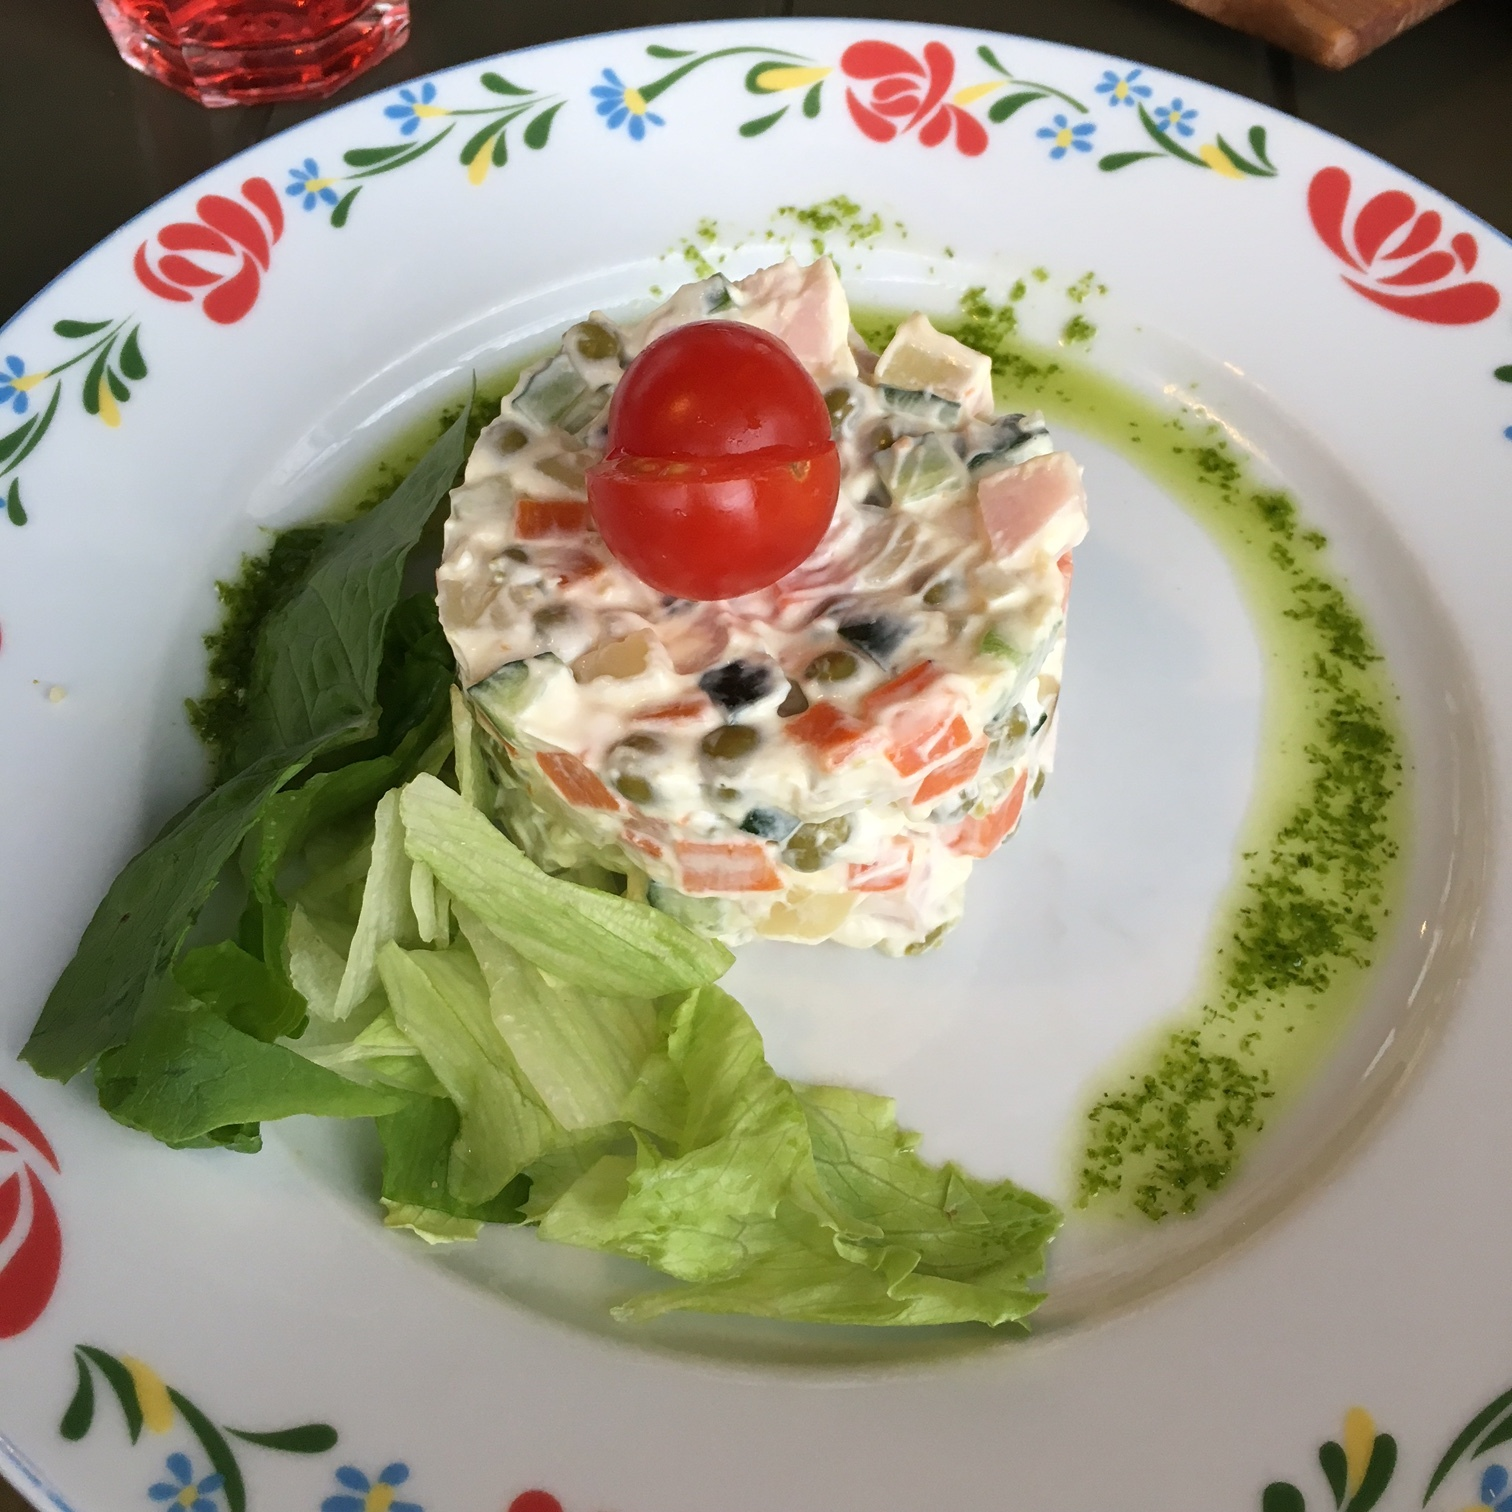 Olivier salat. This is a traditional Russian salad which is compulsory at New Year's and on Birthdays.